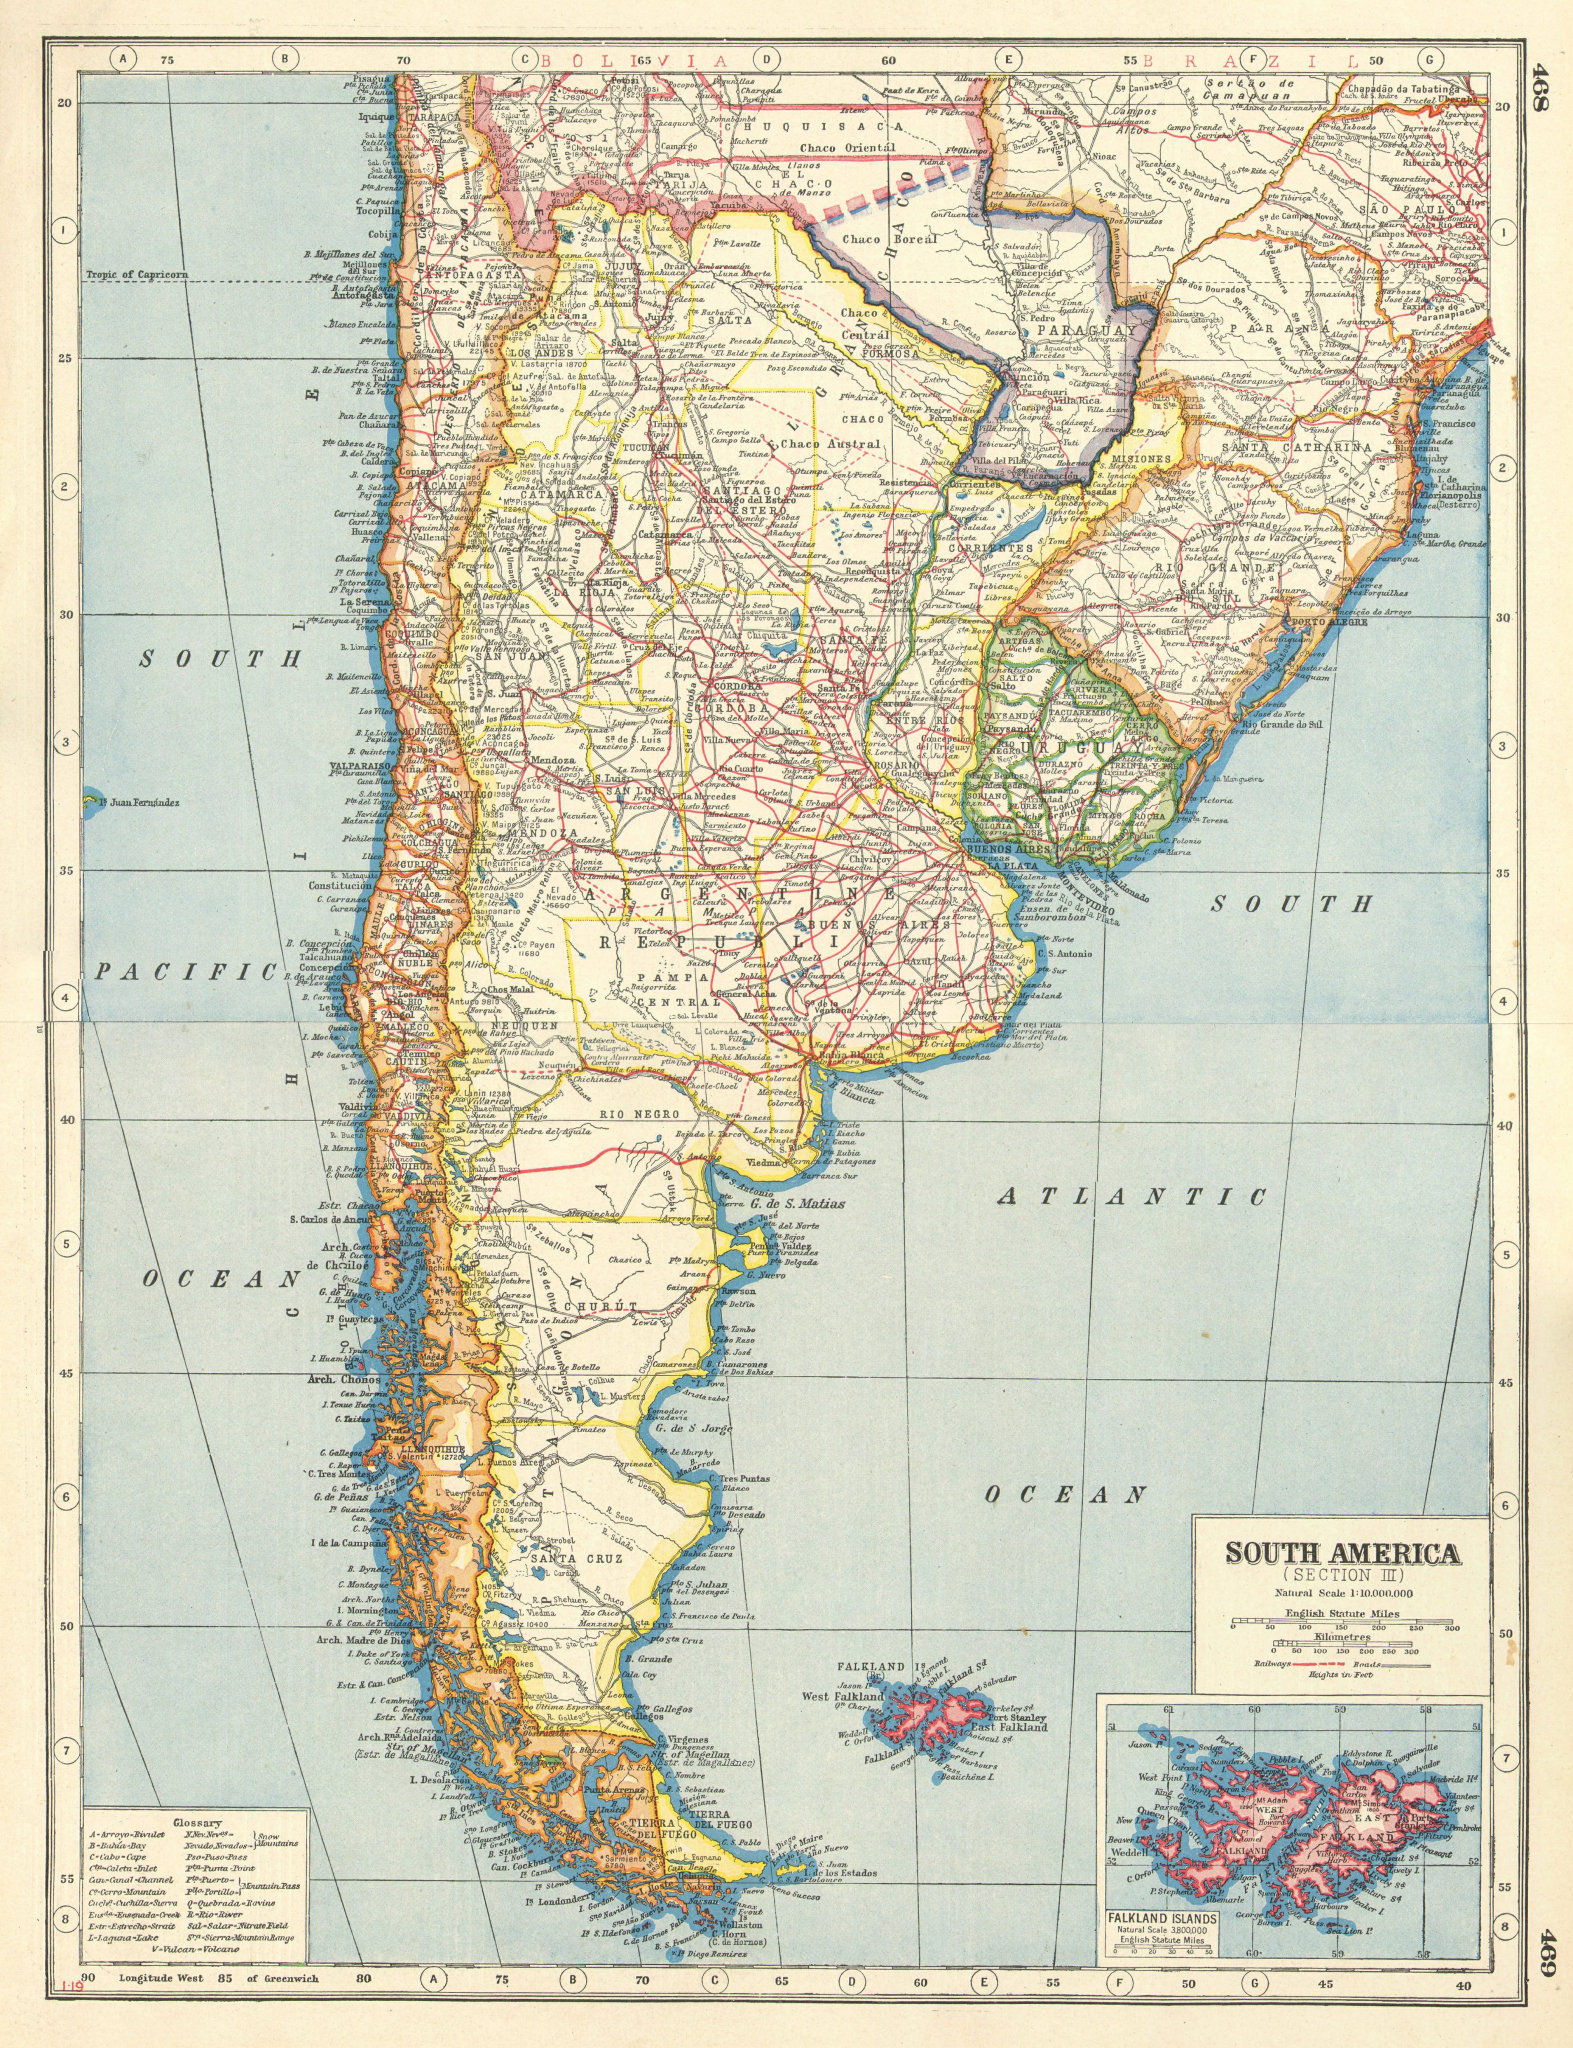 Associate Product S AMERICA. Bolivia-Paraguay Gran Chaco border dispute. Chile Argentina 1920 map